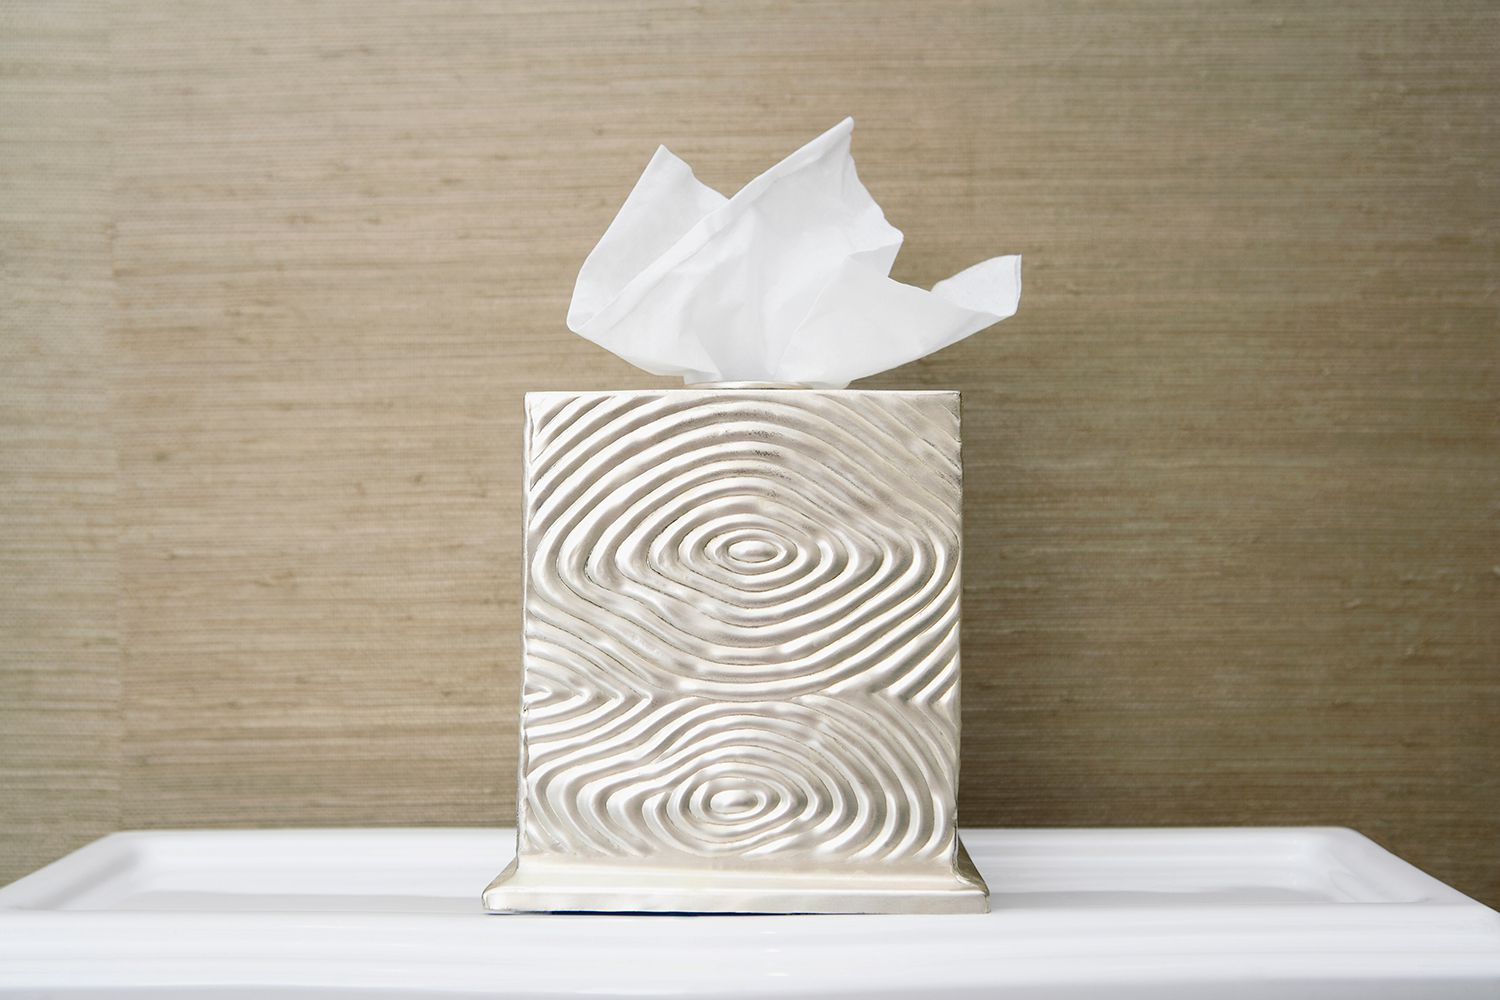 Close-up of a tissue paper in a box